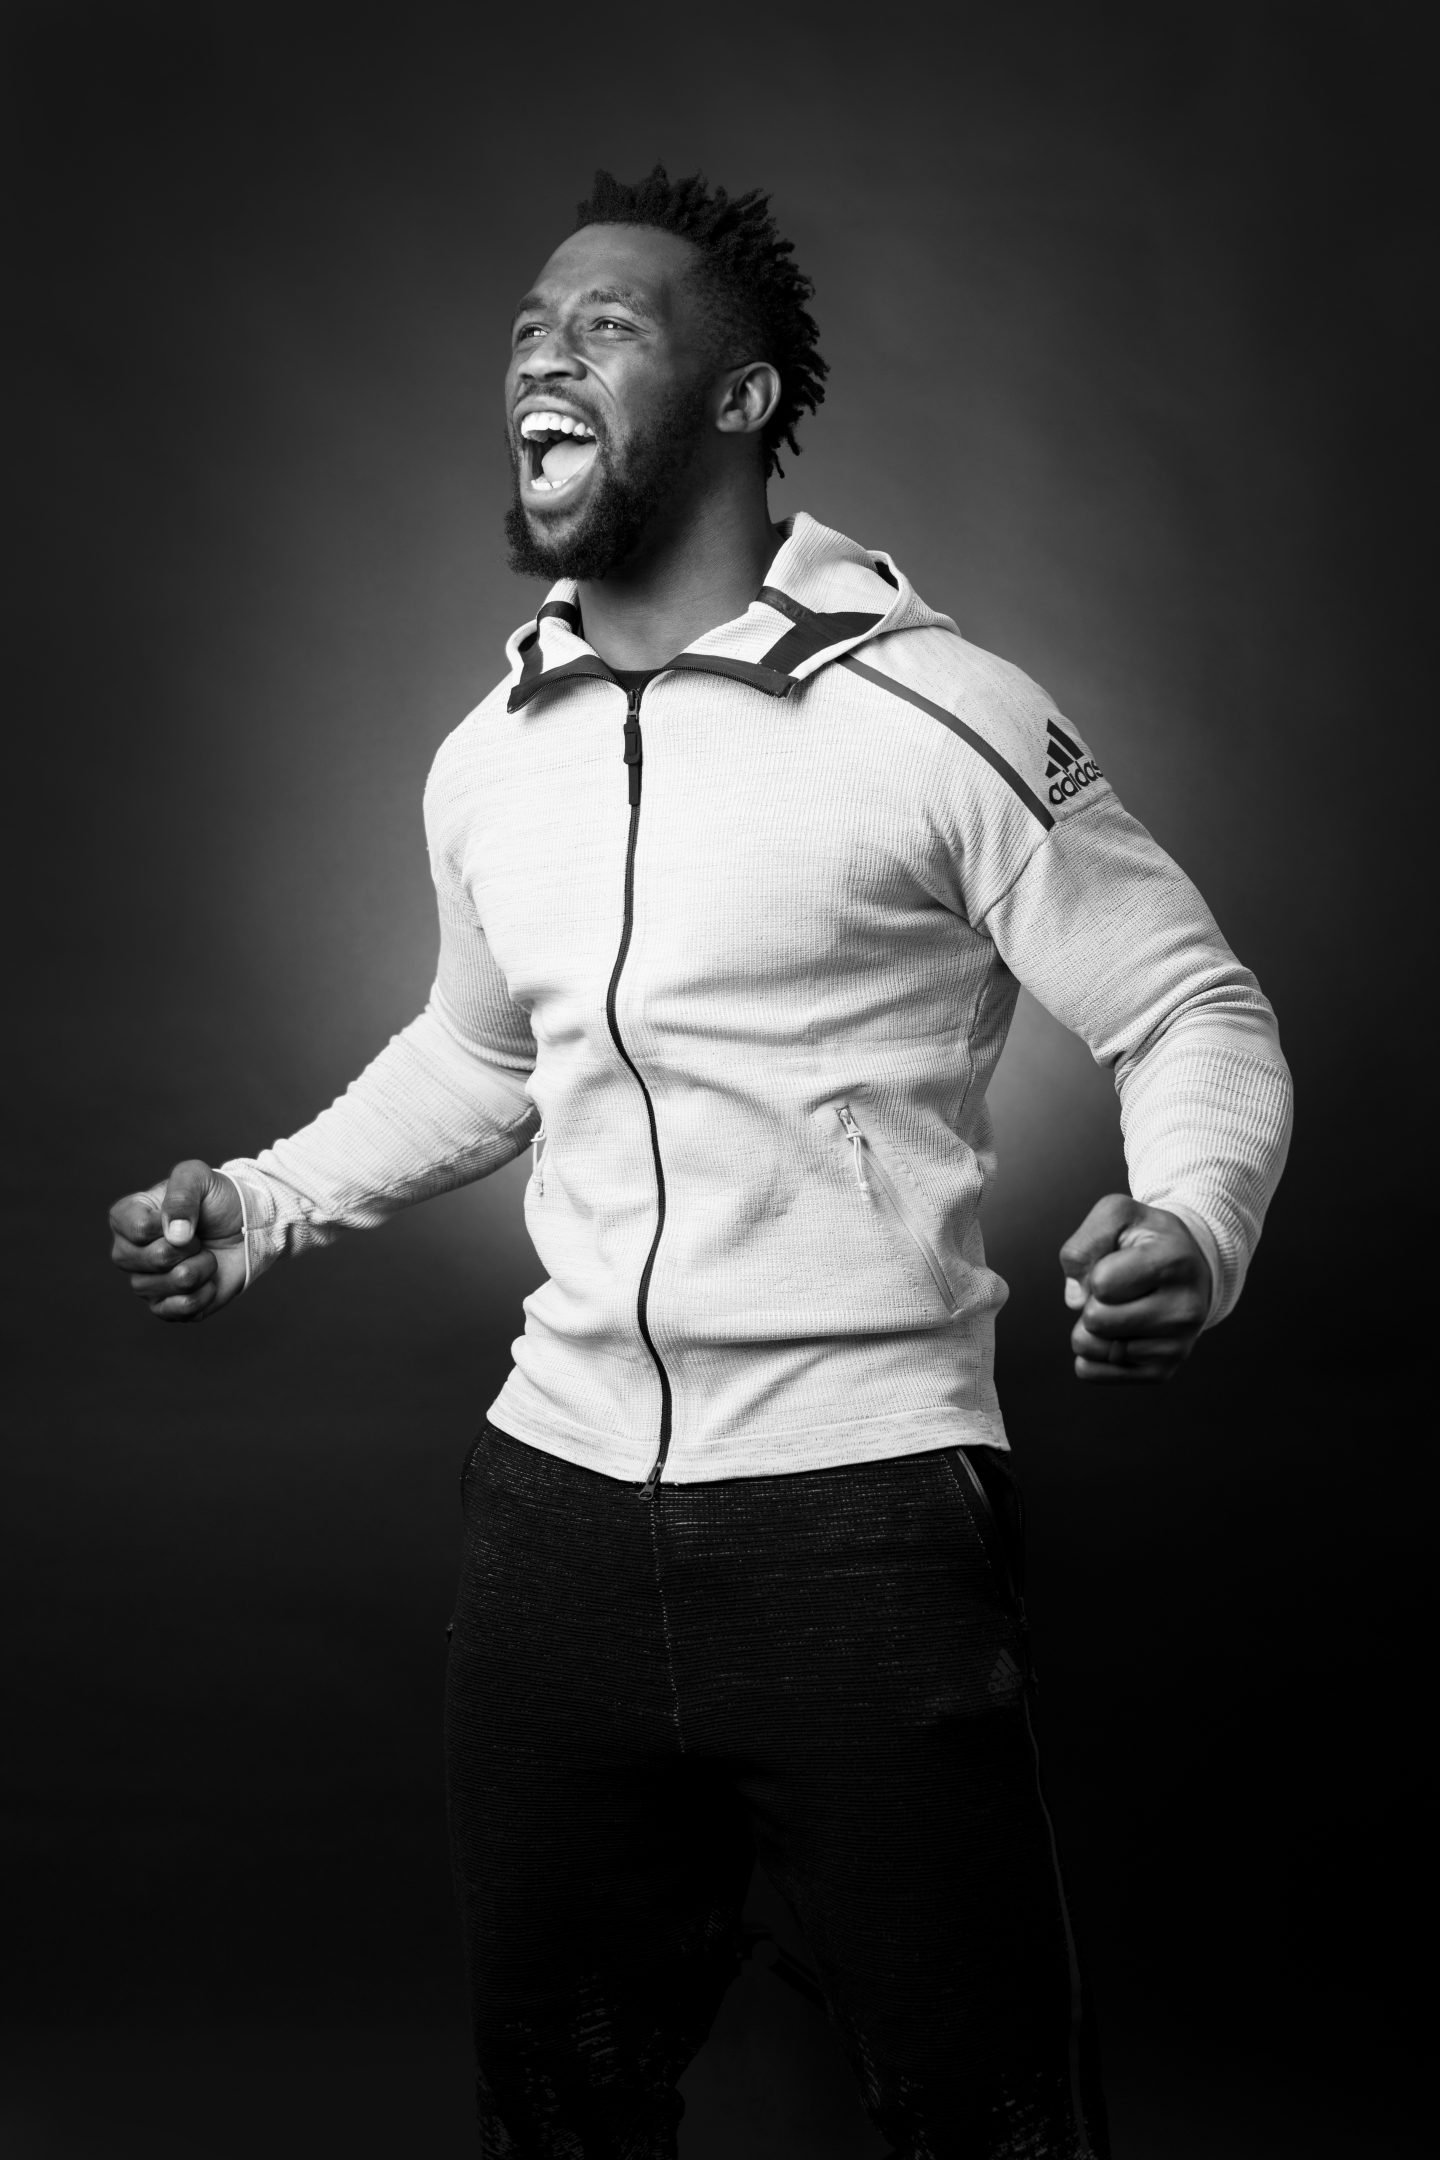 Siya Kolisi stands tall roaring in happiness clenching his fists. Athlete, leadership, success, rugby.